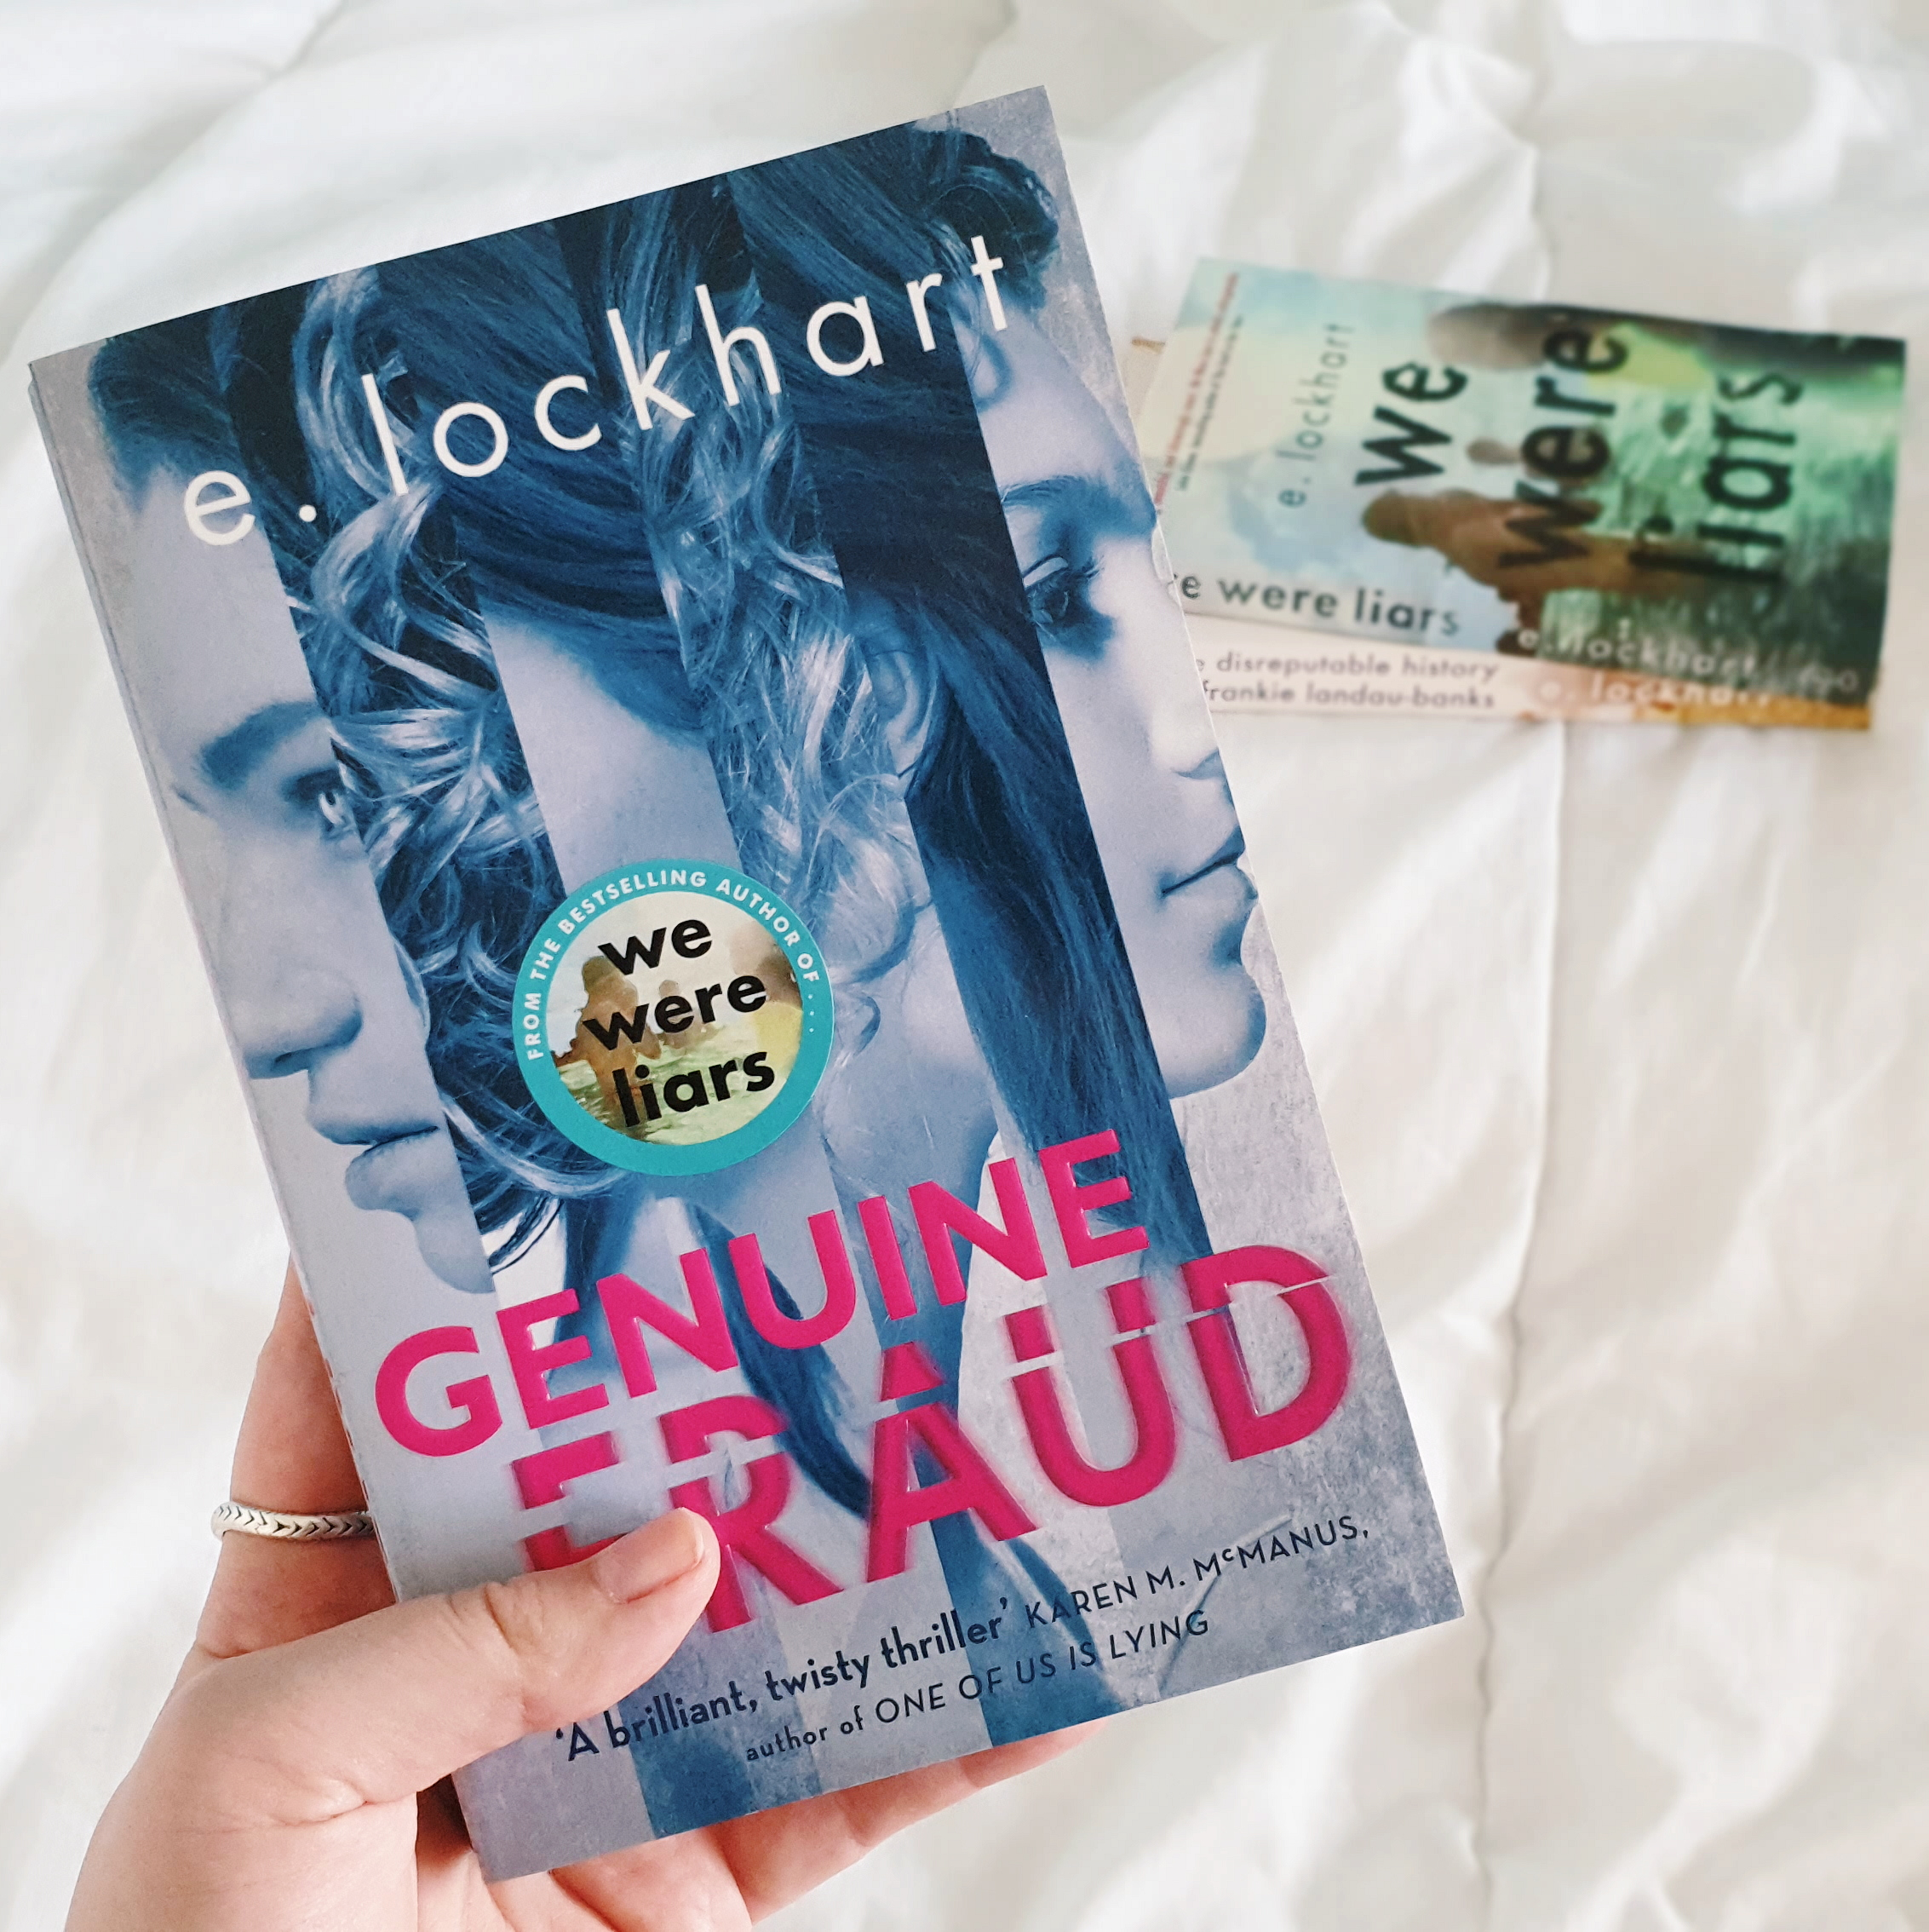 Read my review of 'Genuine Fraud' by E. Lockhart on theveryhungrybookworm.com!